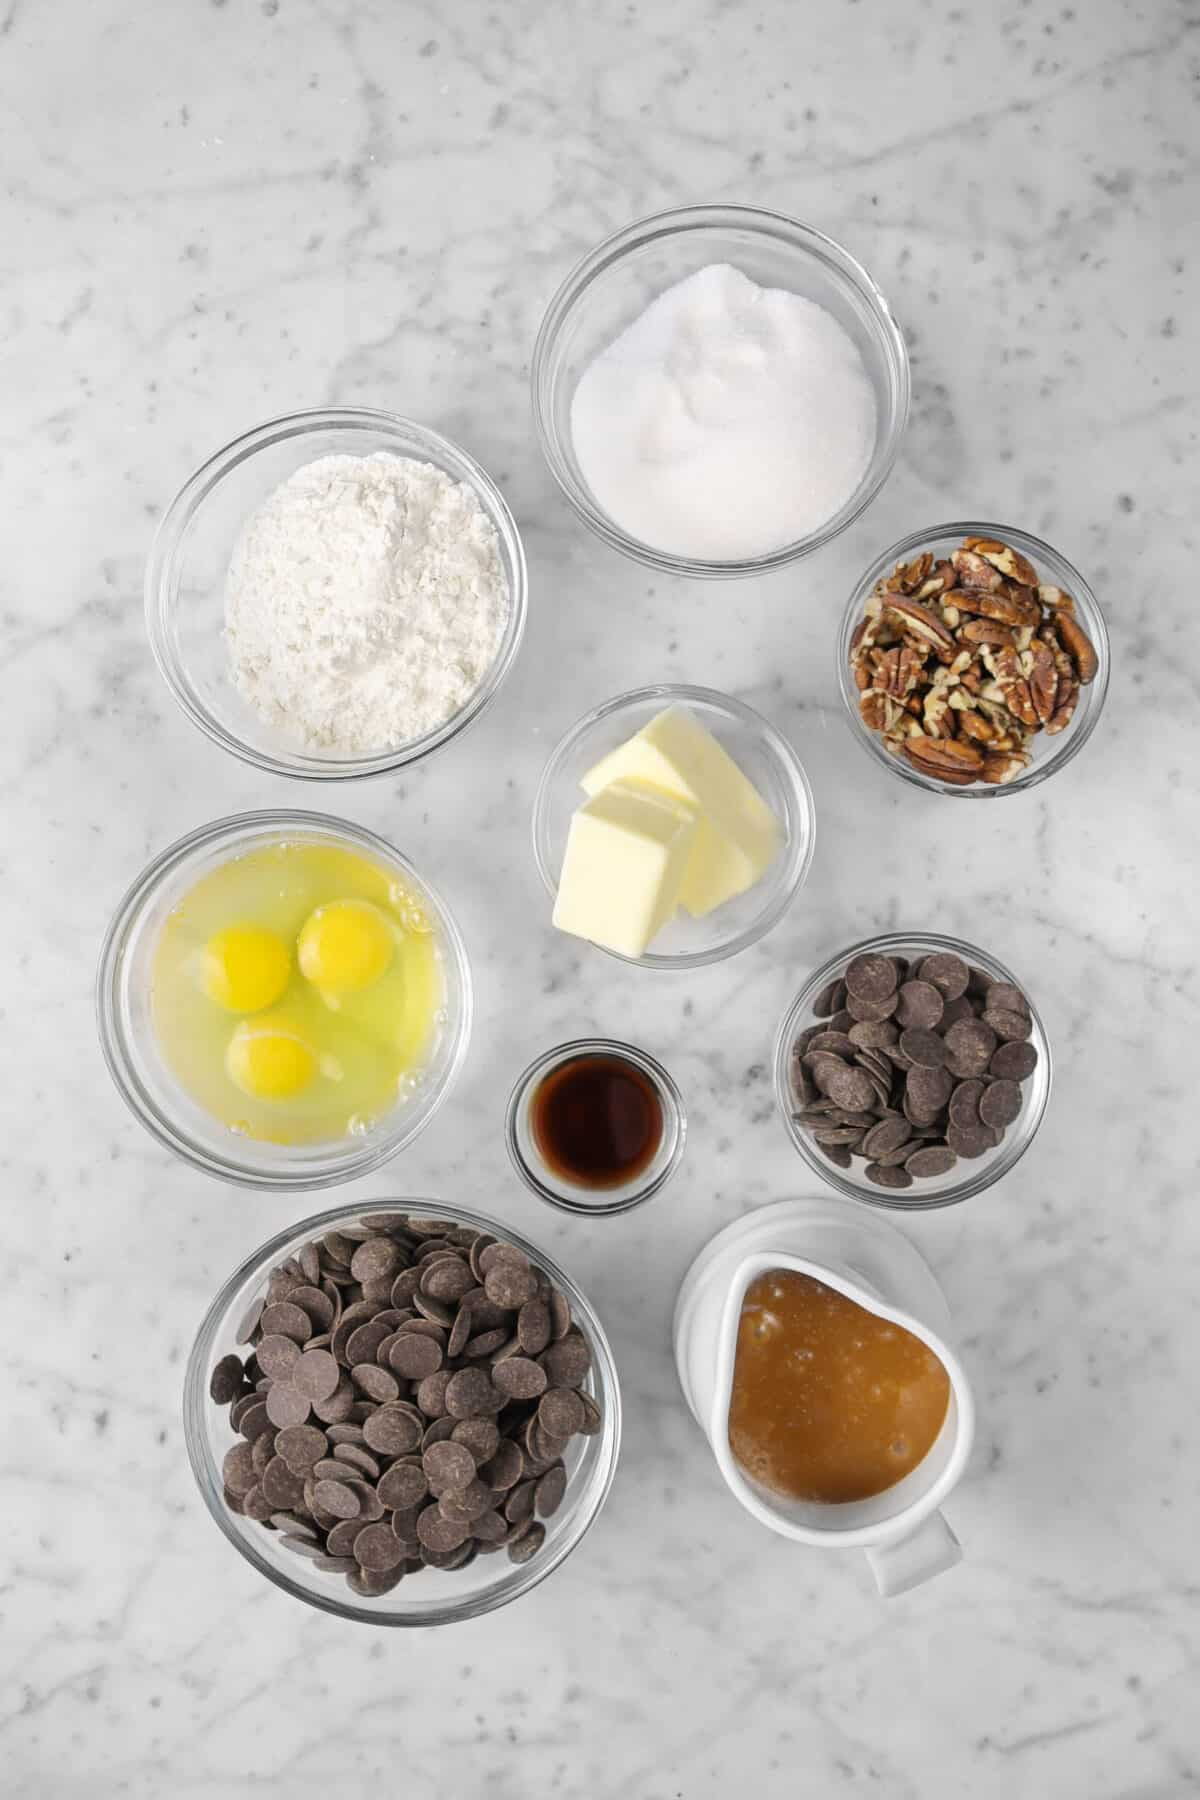 sugar, flour, pecans, butter, chocolate chips, eggs, vanilla, and caramel sauce on marble counter